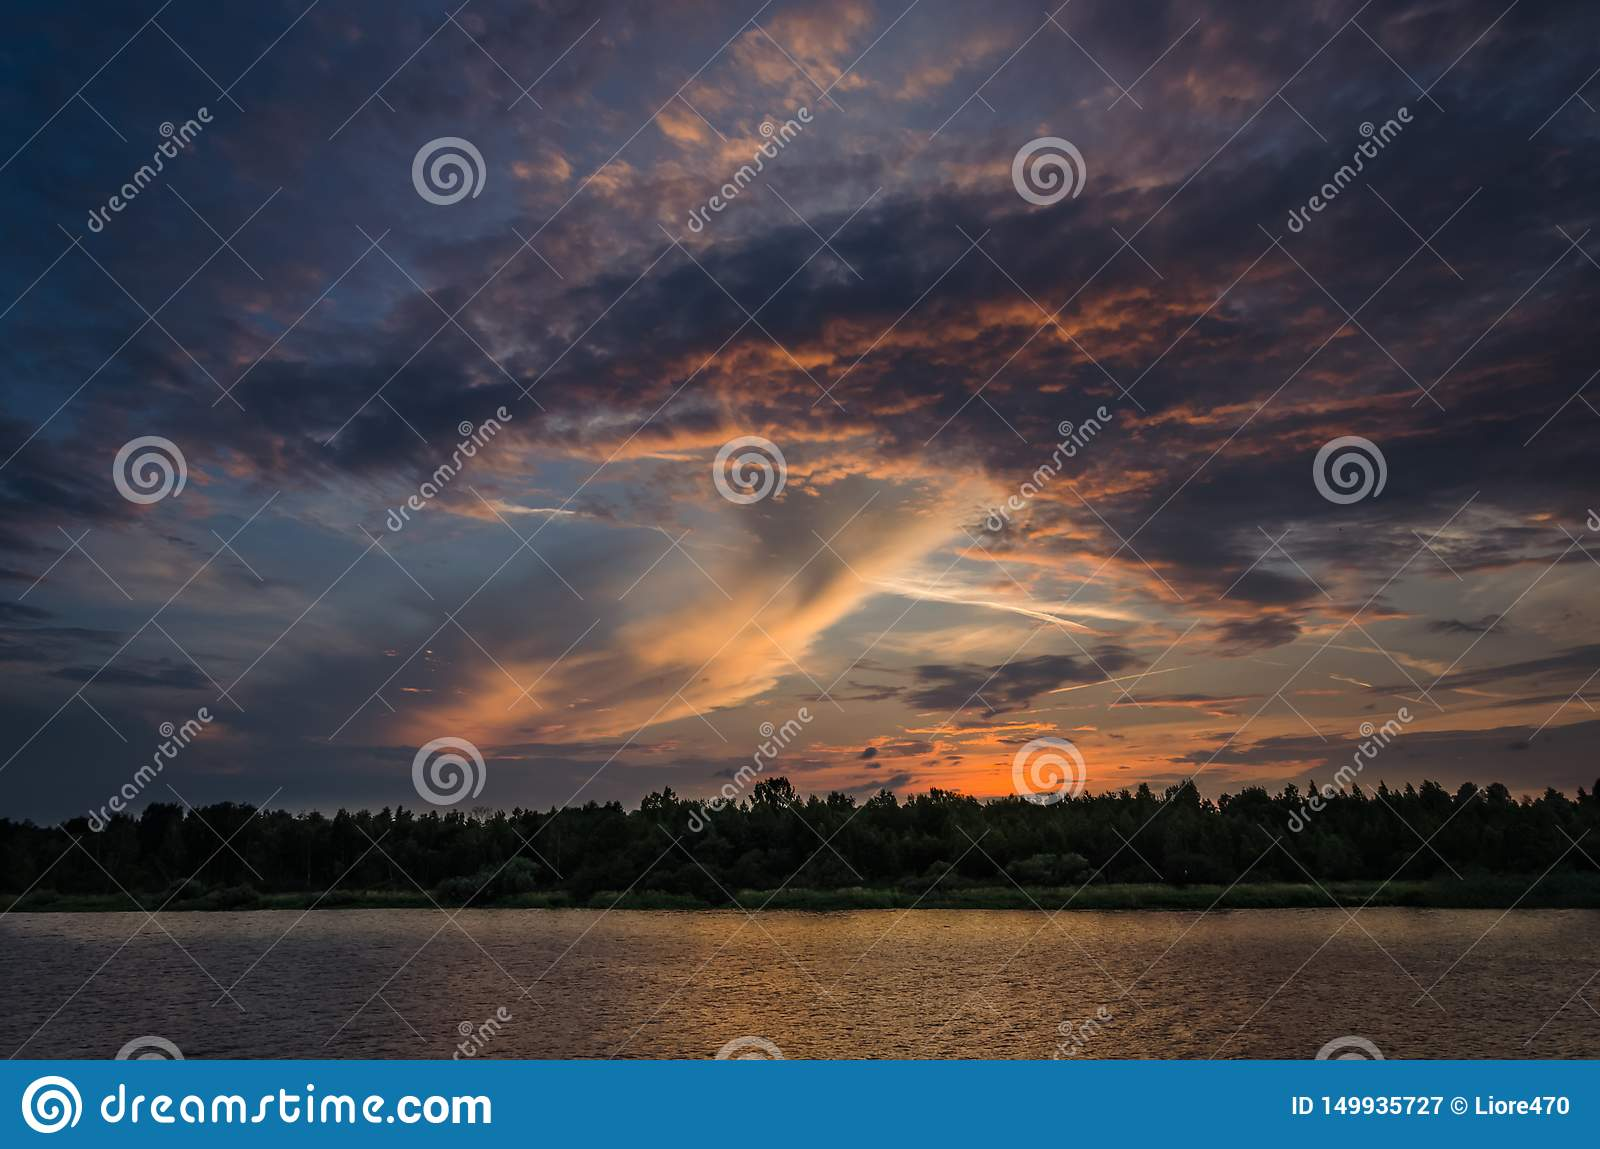 Dramatic clouds over water during sunset